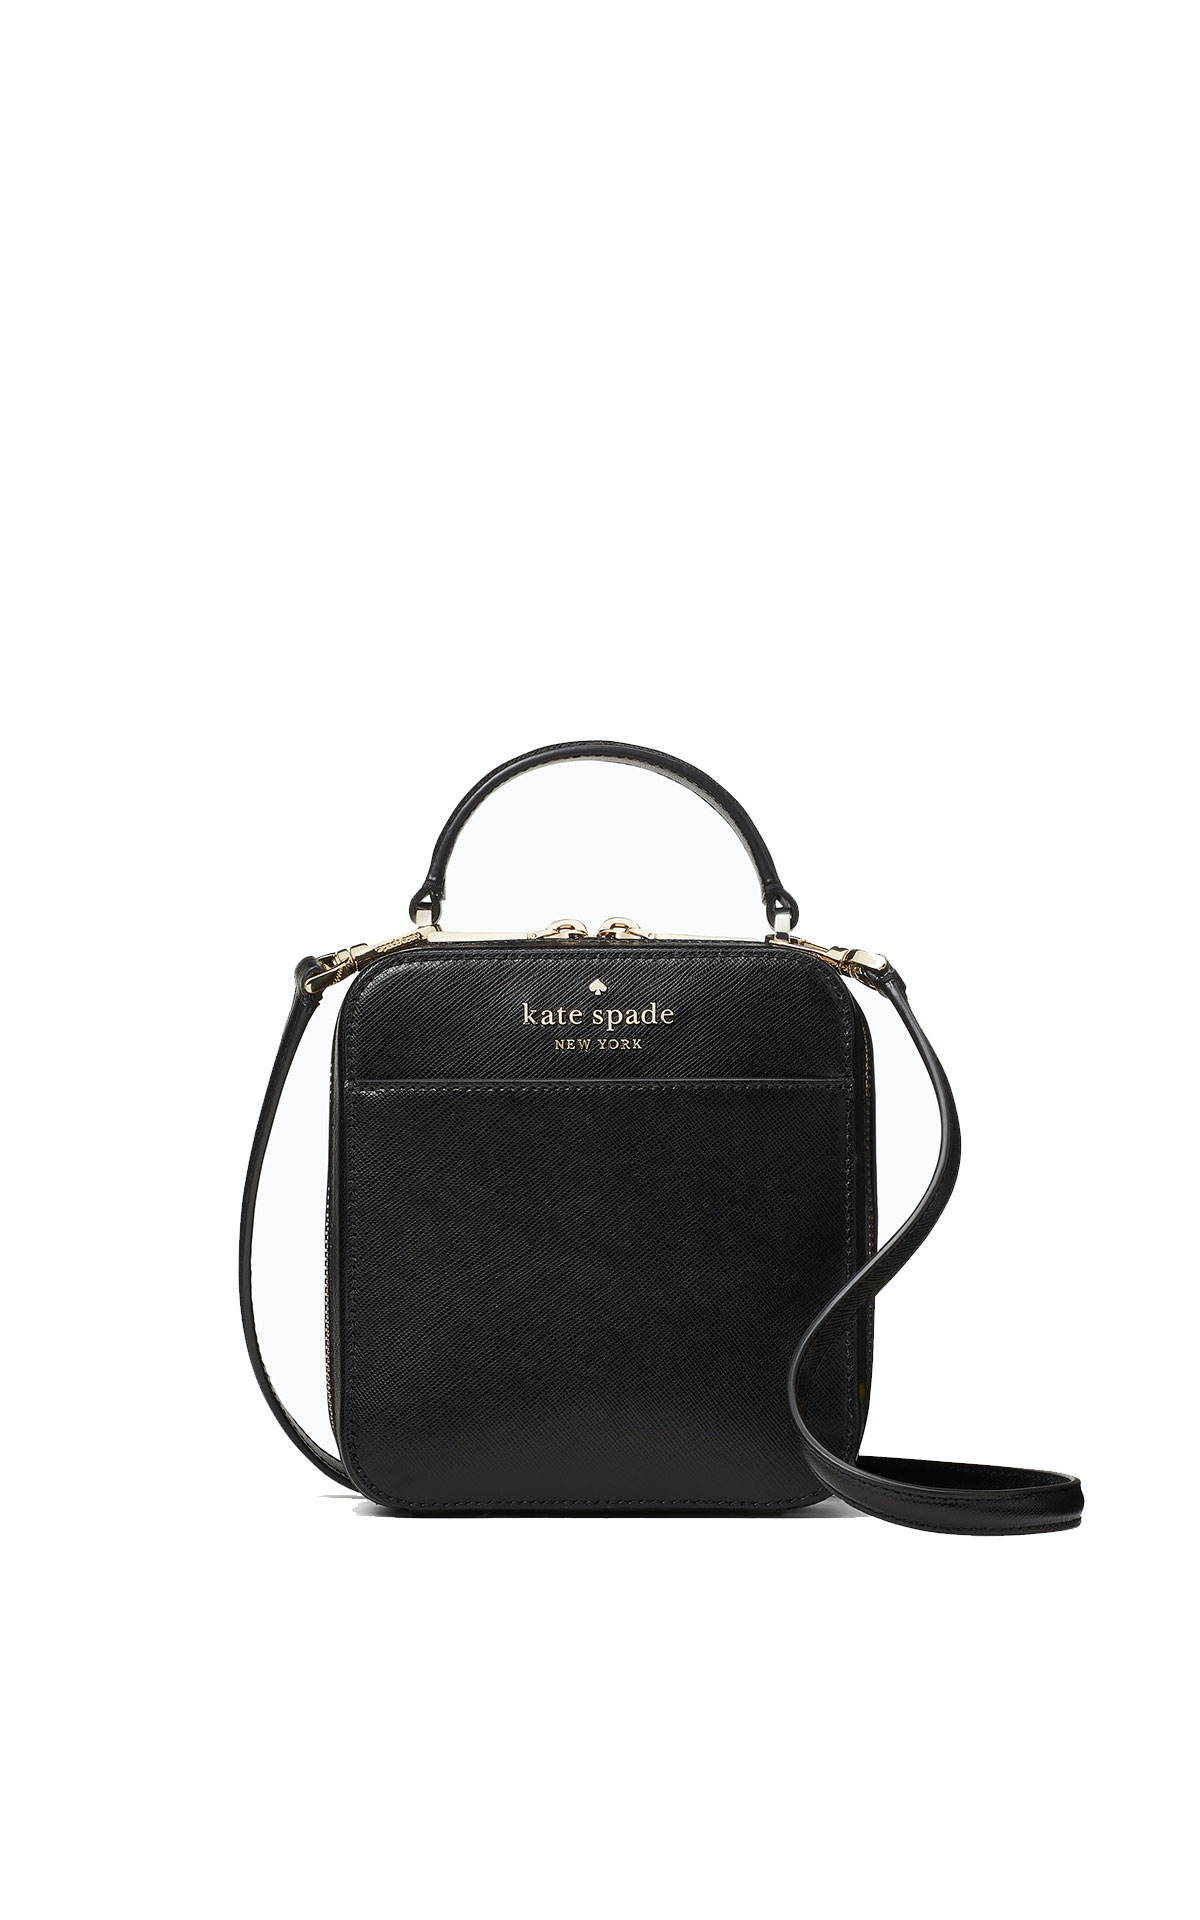 kate spade new york Daisy vanity crossbody - black from Bicester Village